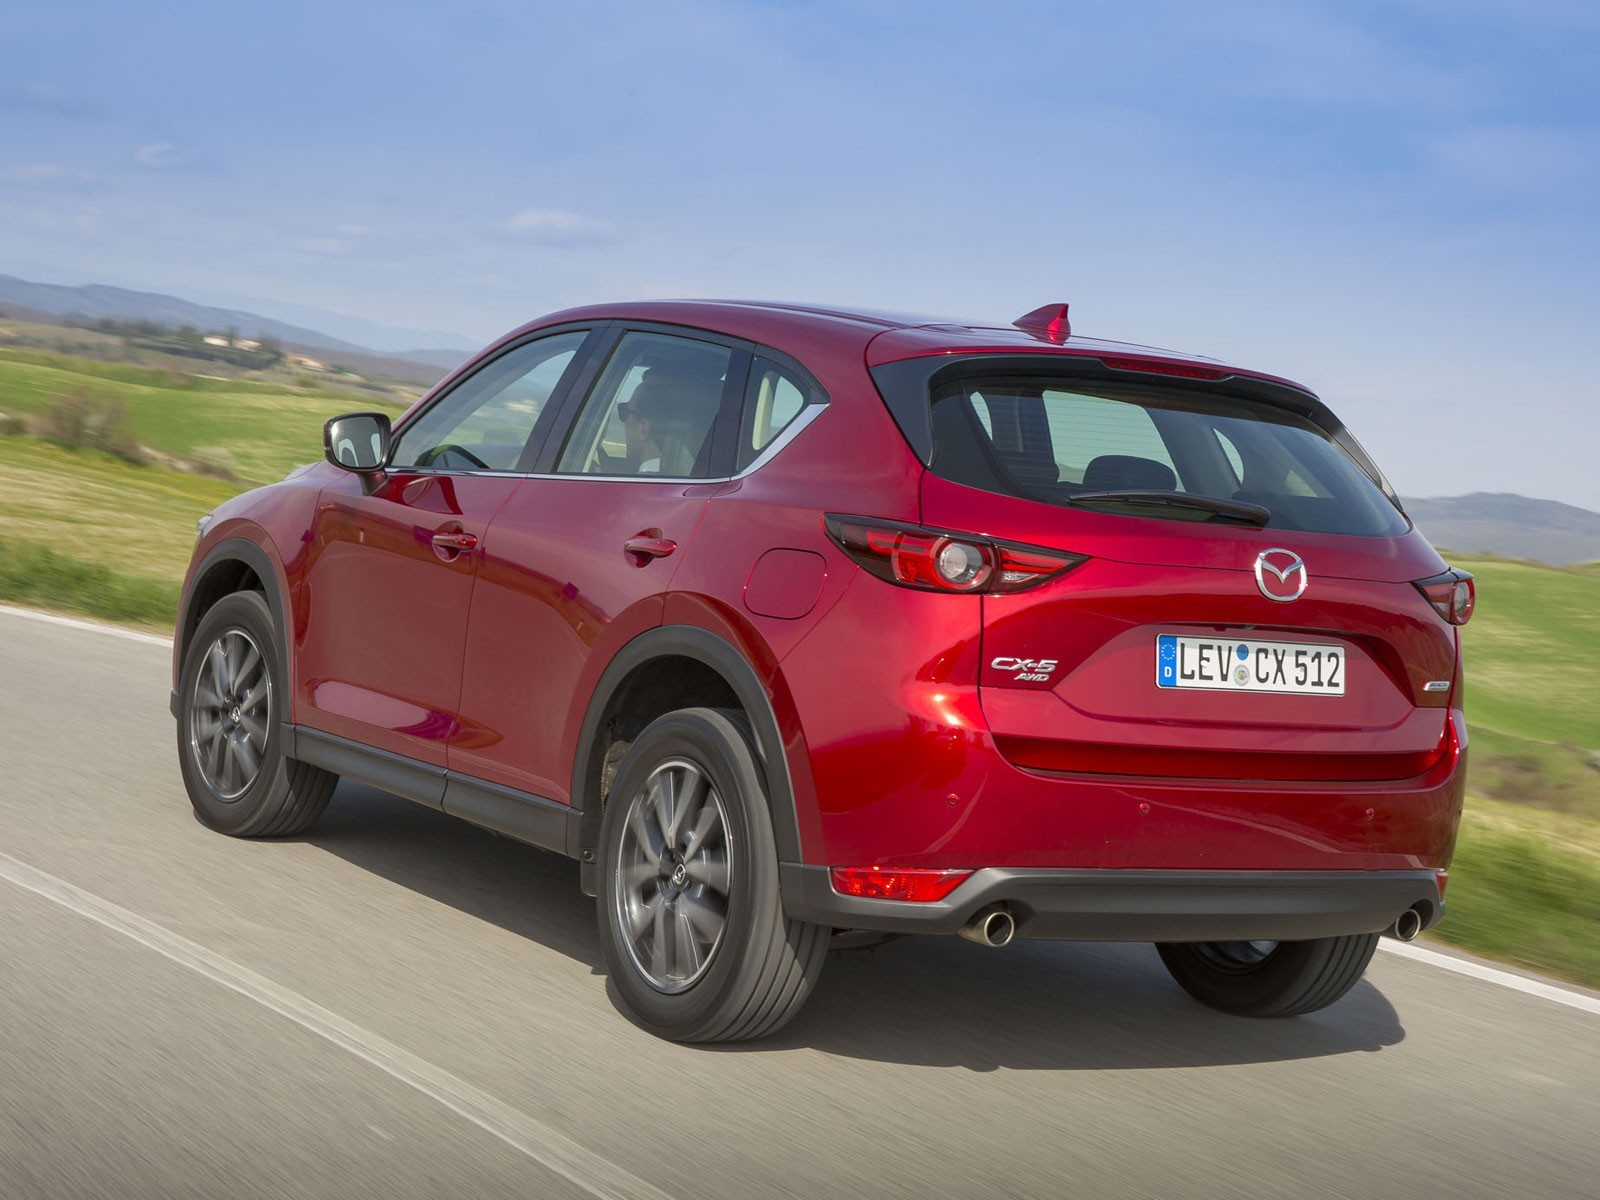 foto neuer mazda cx 5 kommt juni oesterreich vom. Black Bedroom Furniture Sets. Home Design Ideas